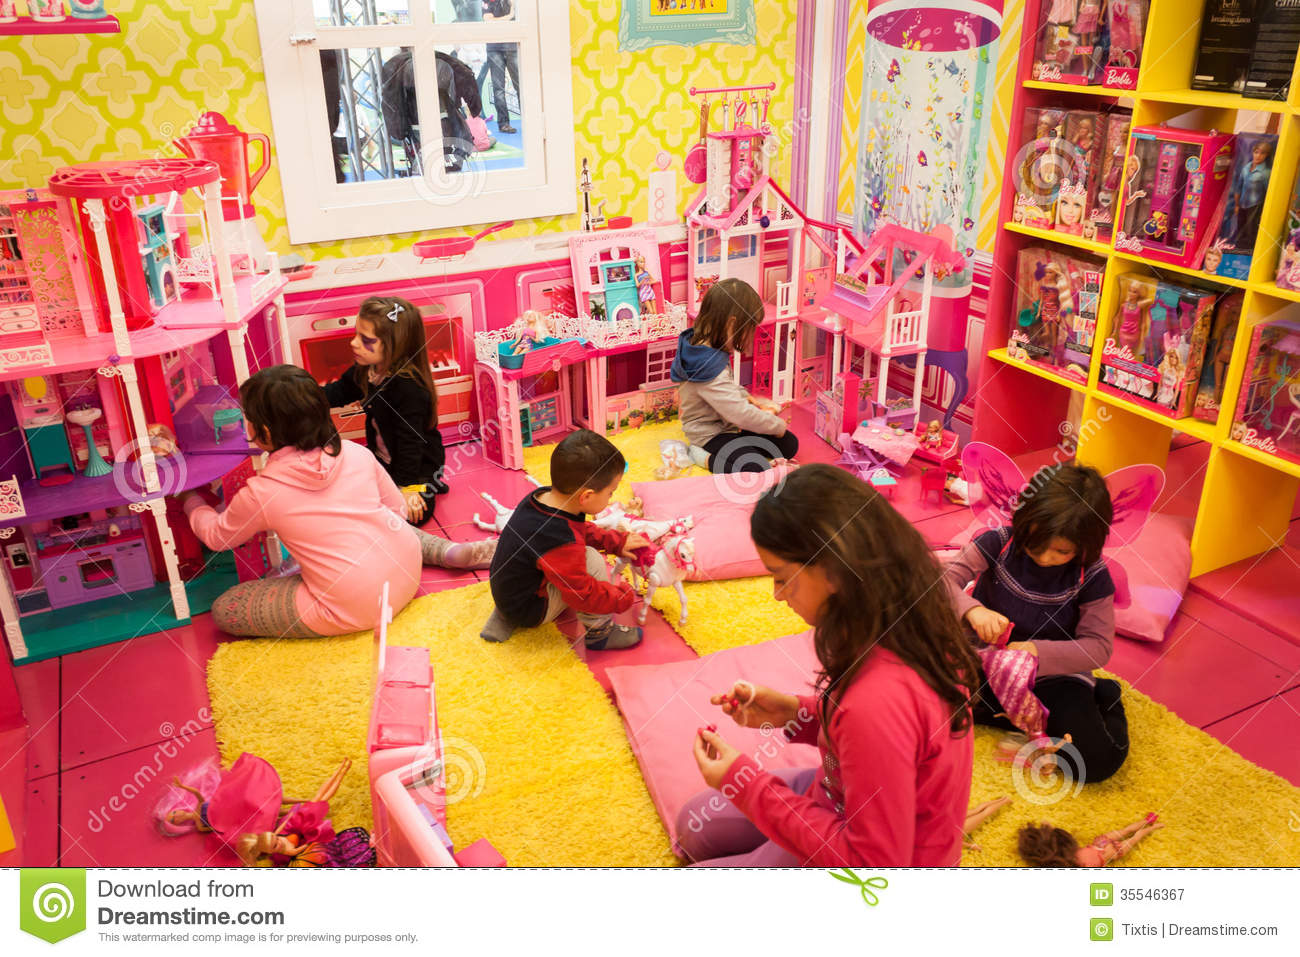 House Toys For Girls : Girls playing inside barbie s house at g come giocare in milan